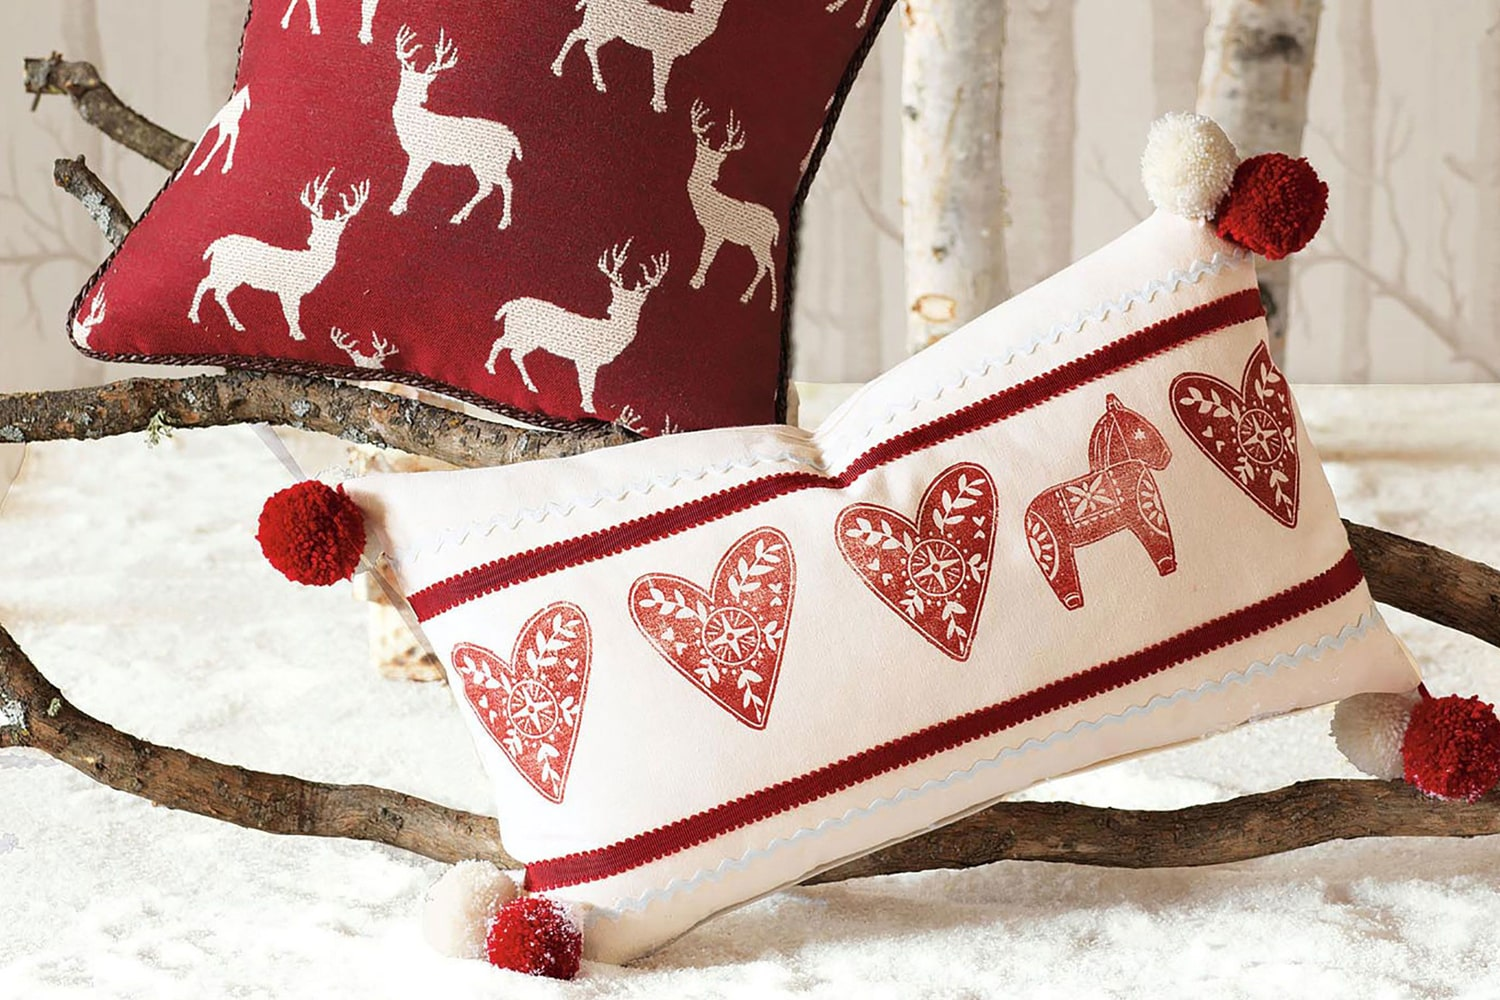 Prints that scream Christmas helps your home look right for the holiday. Get them on cushion covers, throws and bedsheets! The kids are going to love it!